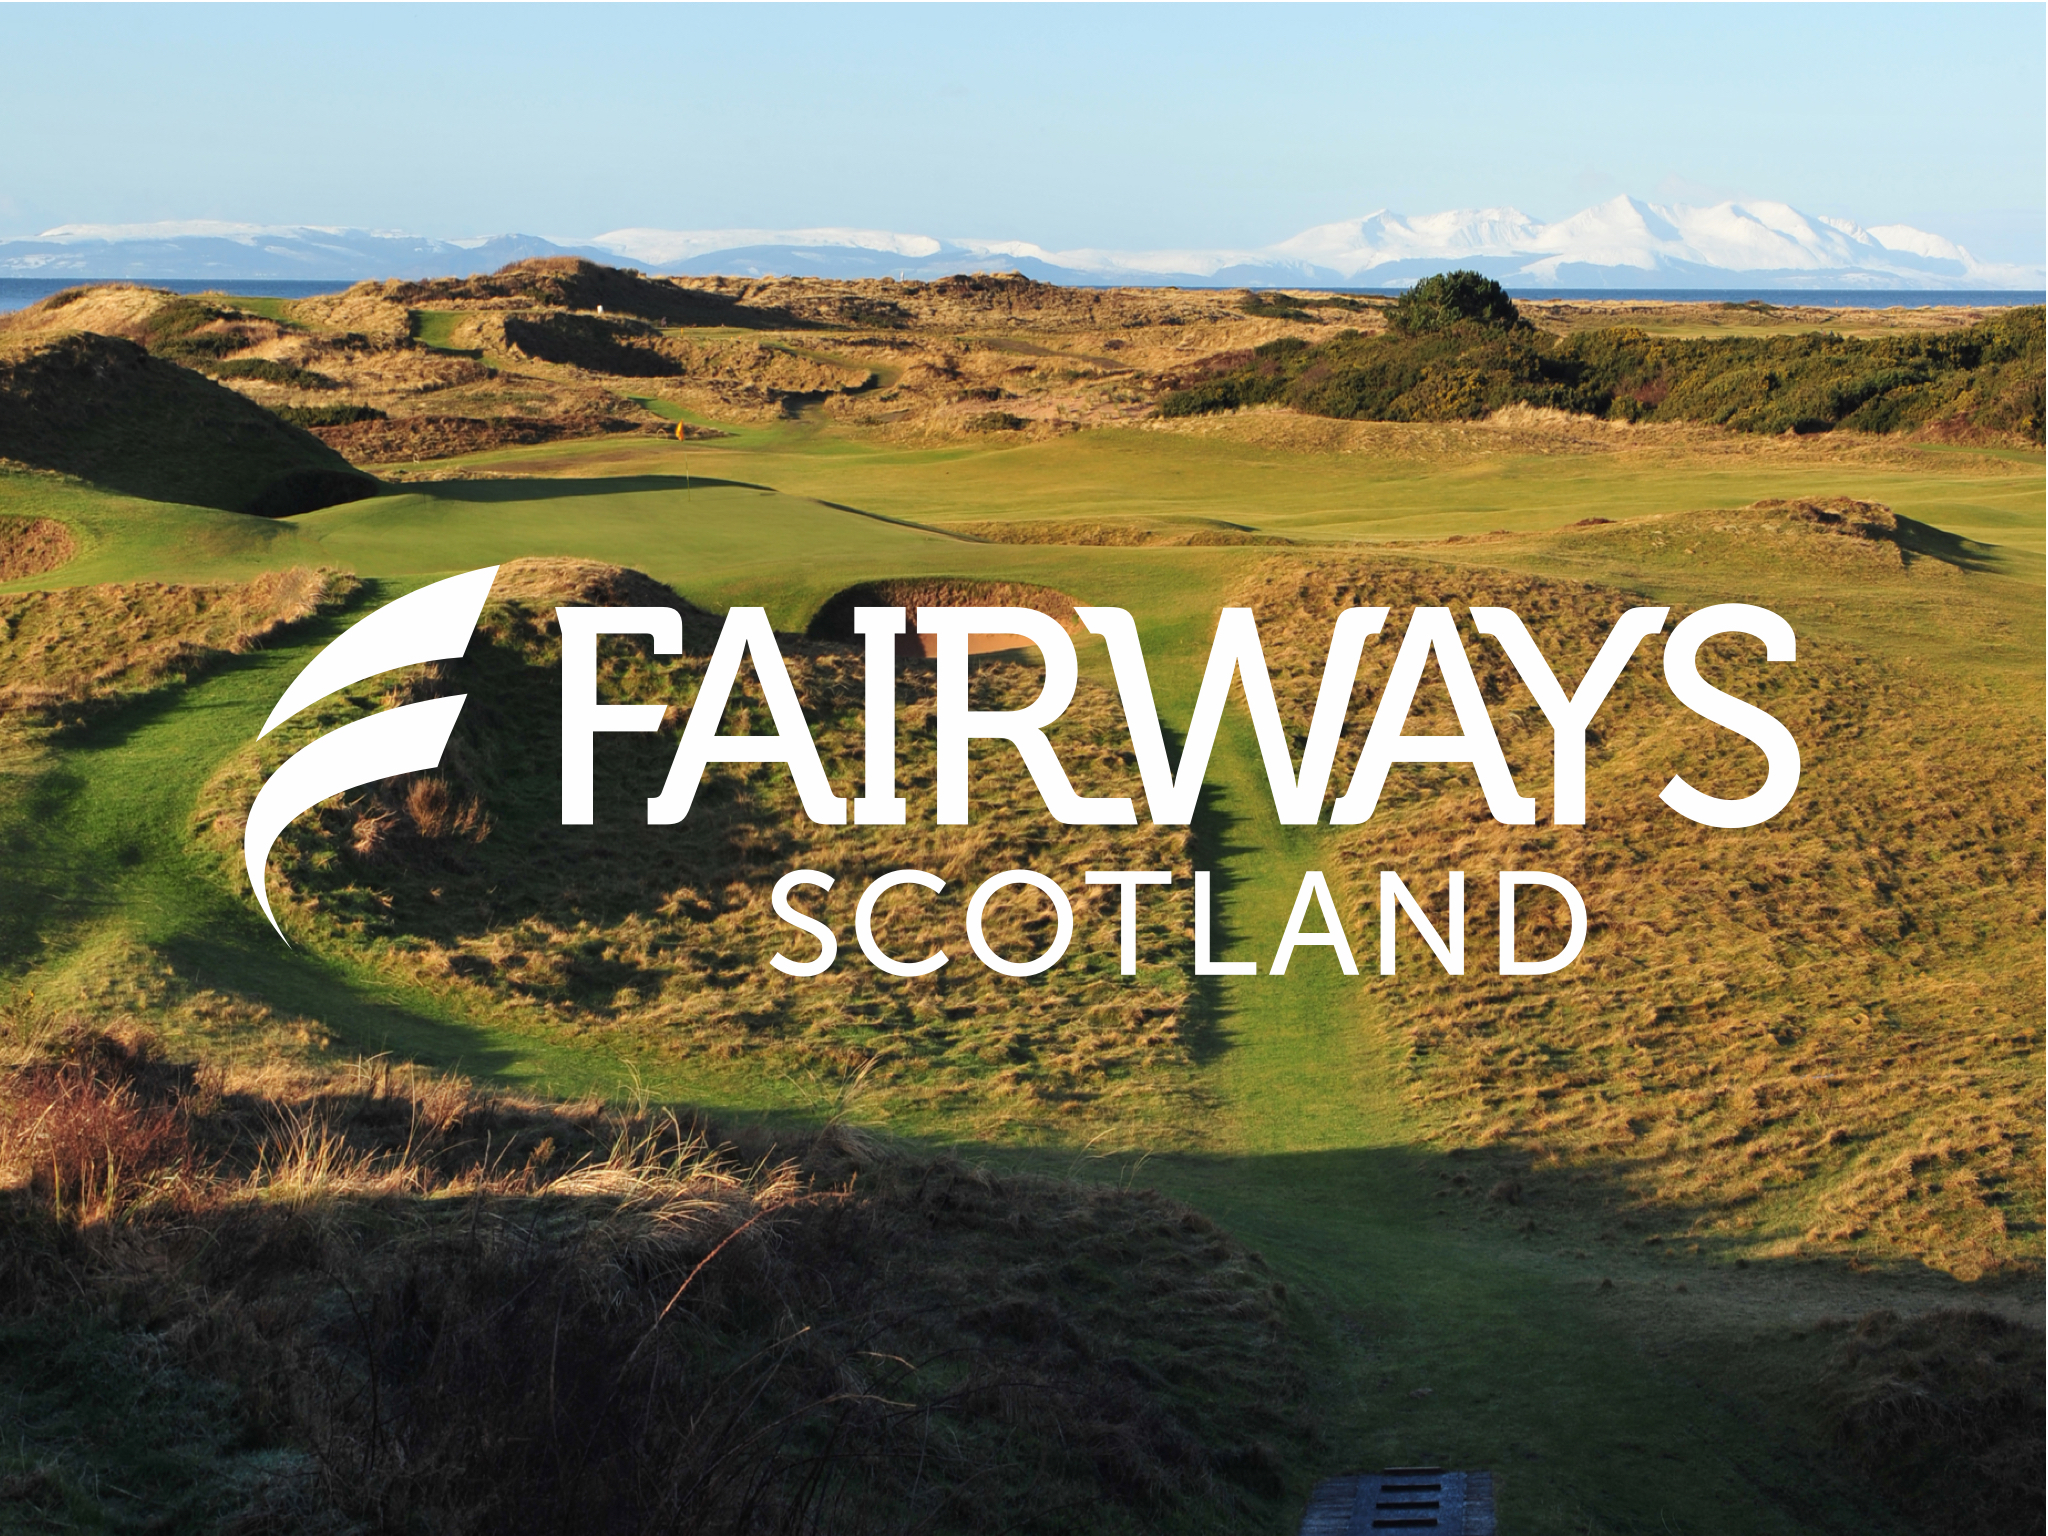 Fairways Scotland